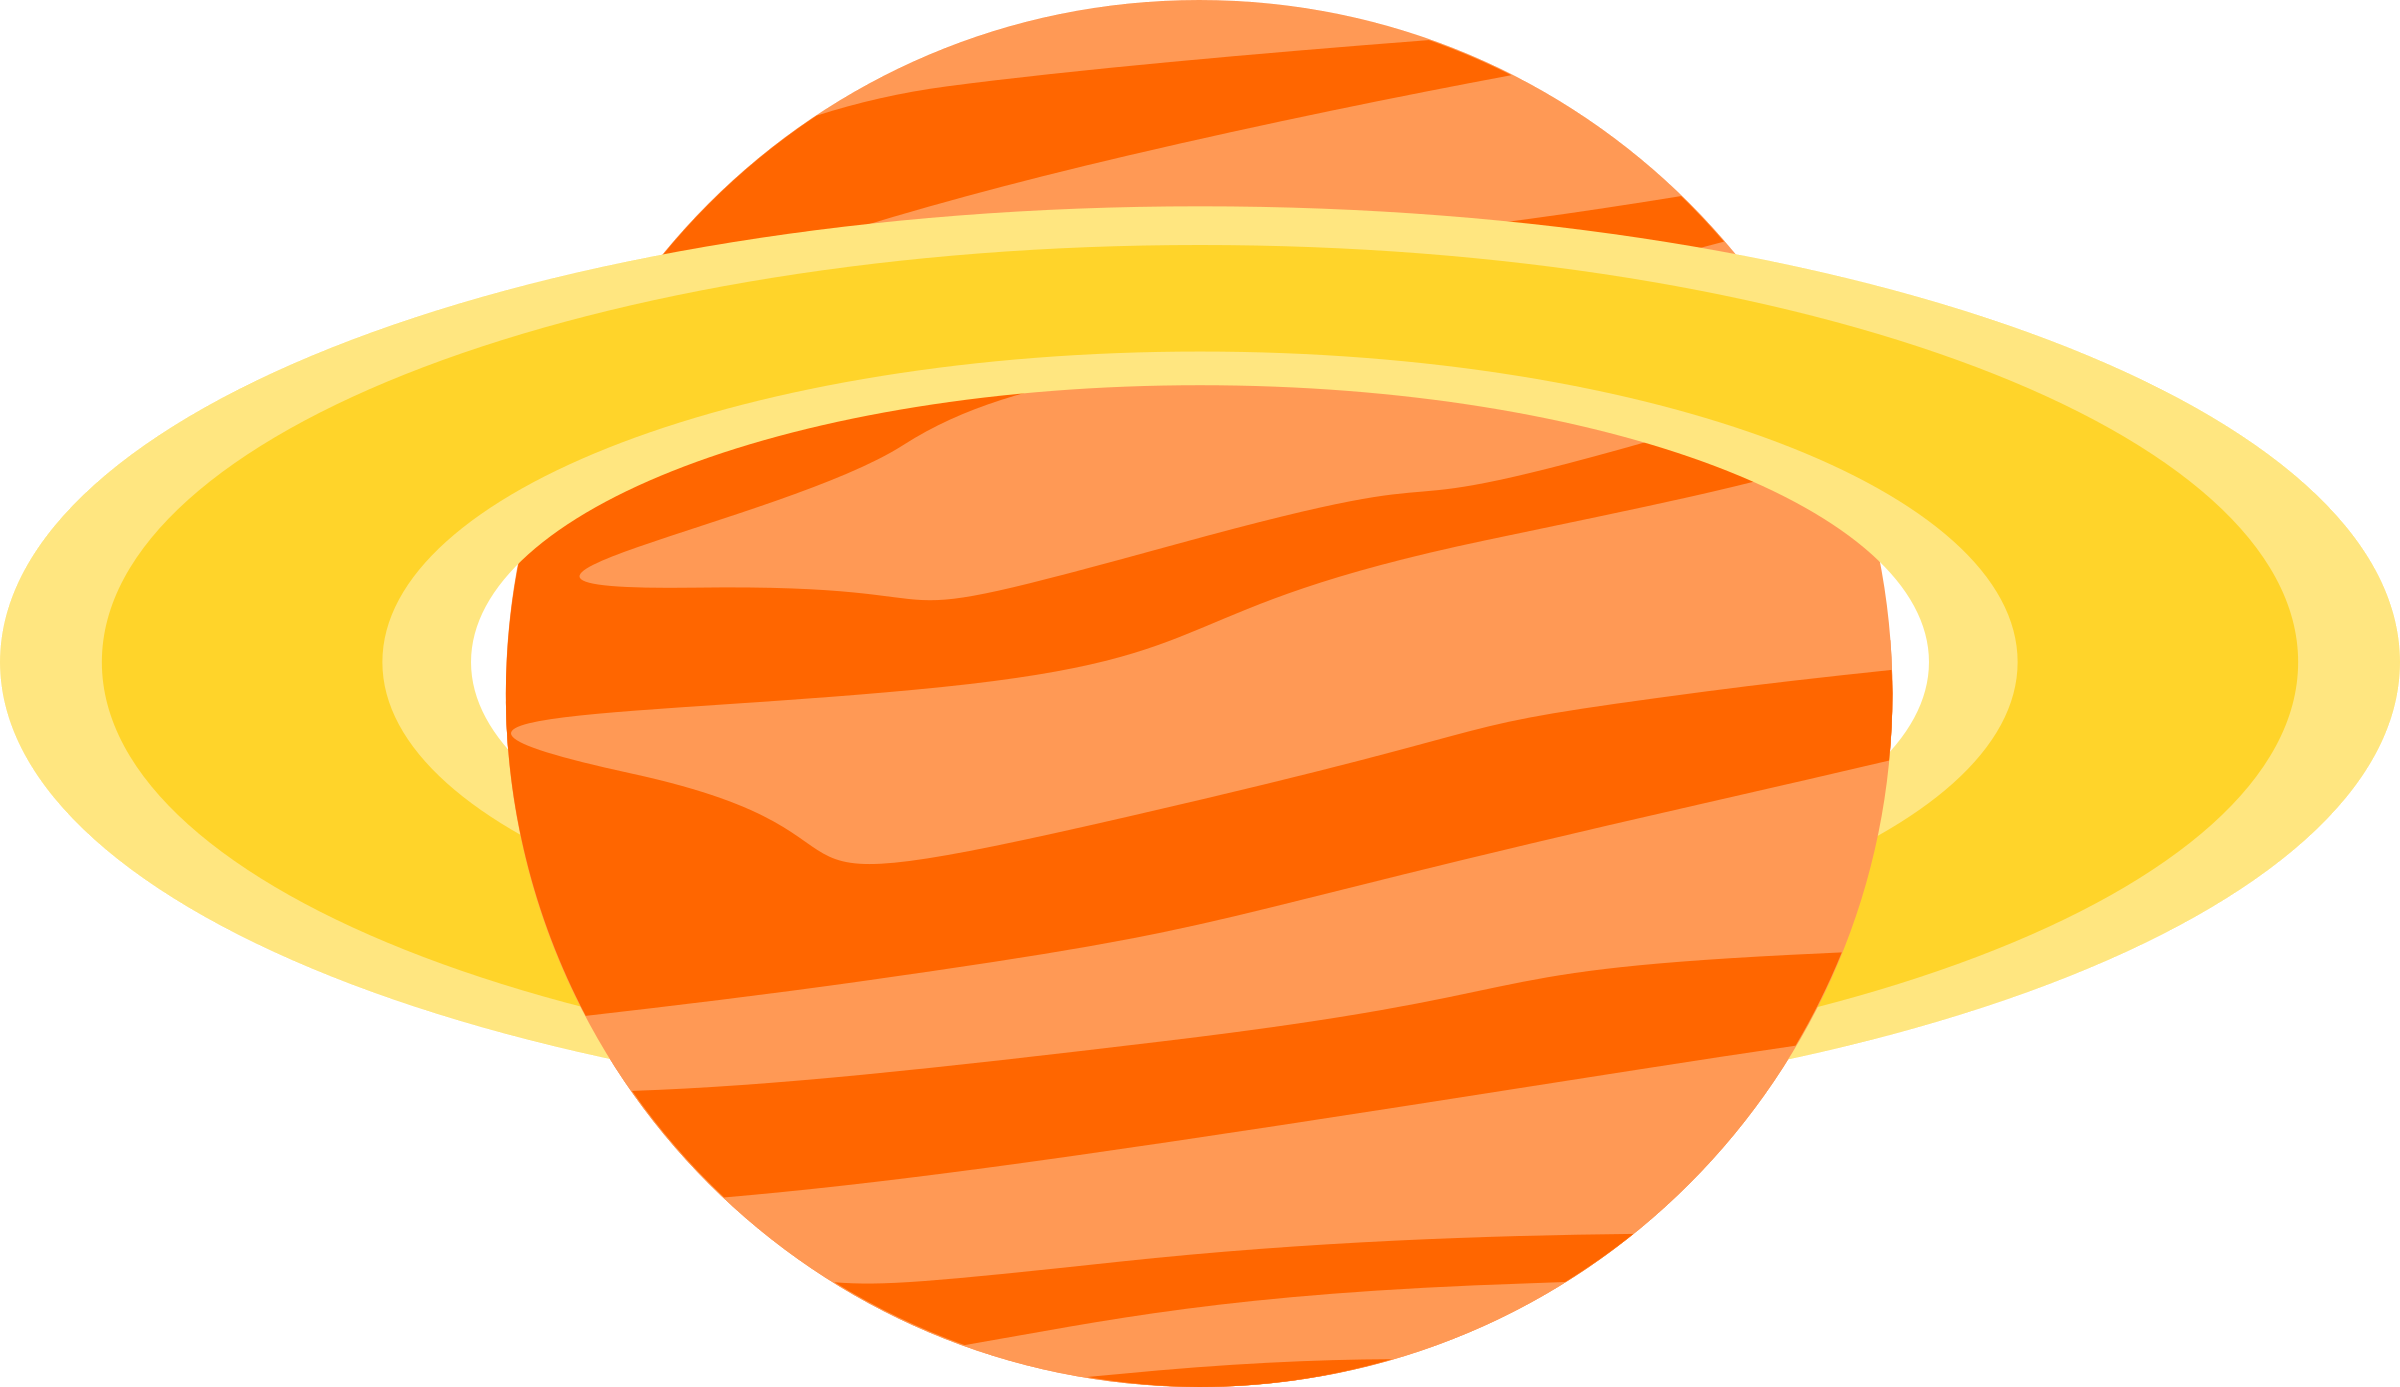 Planets clipart starveyors. Galactic planet free on